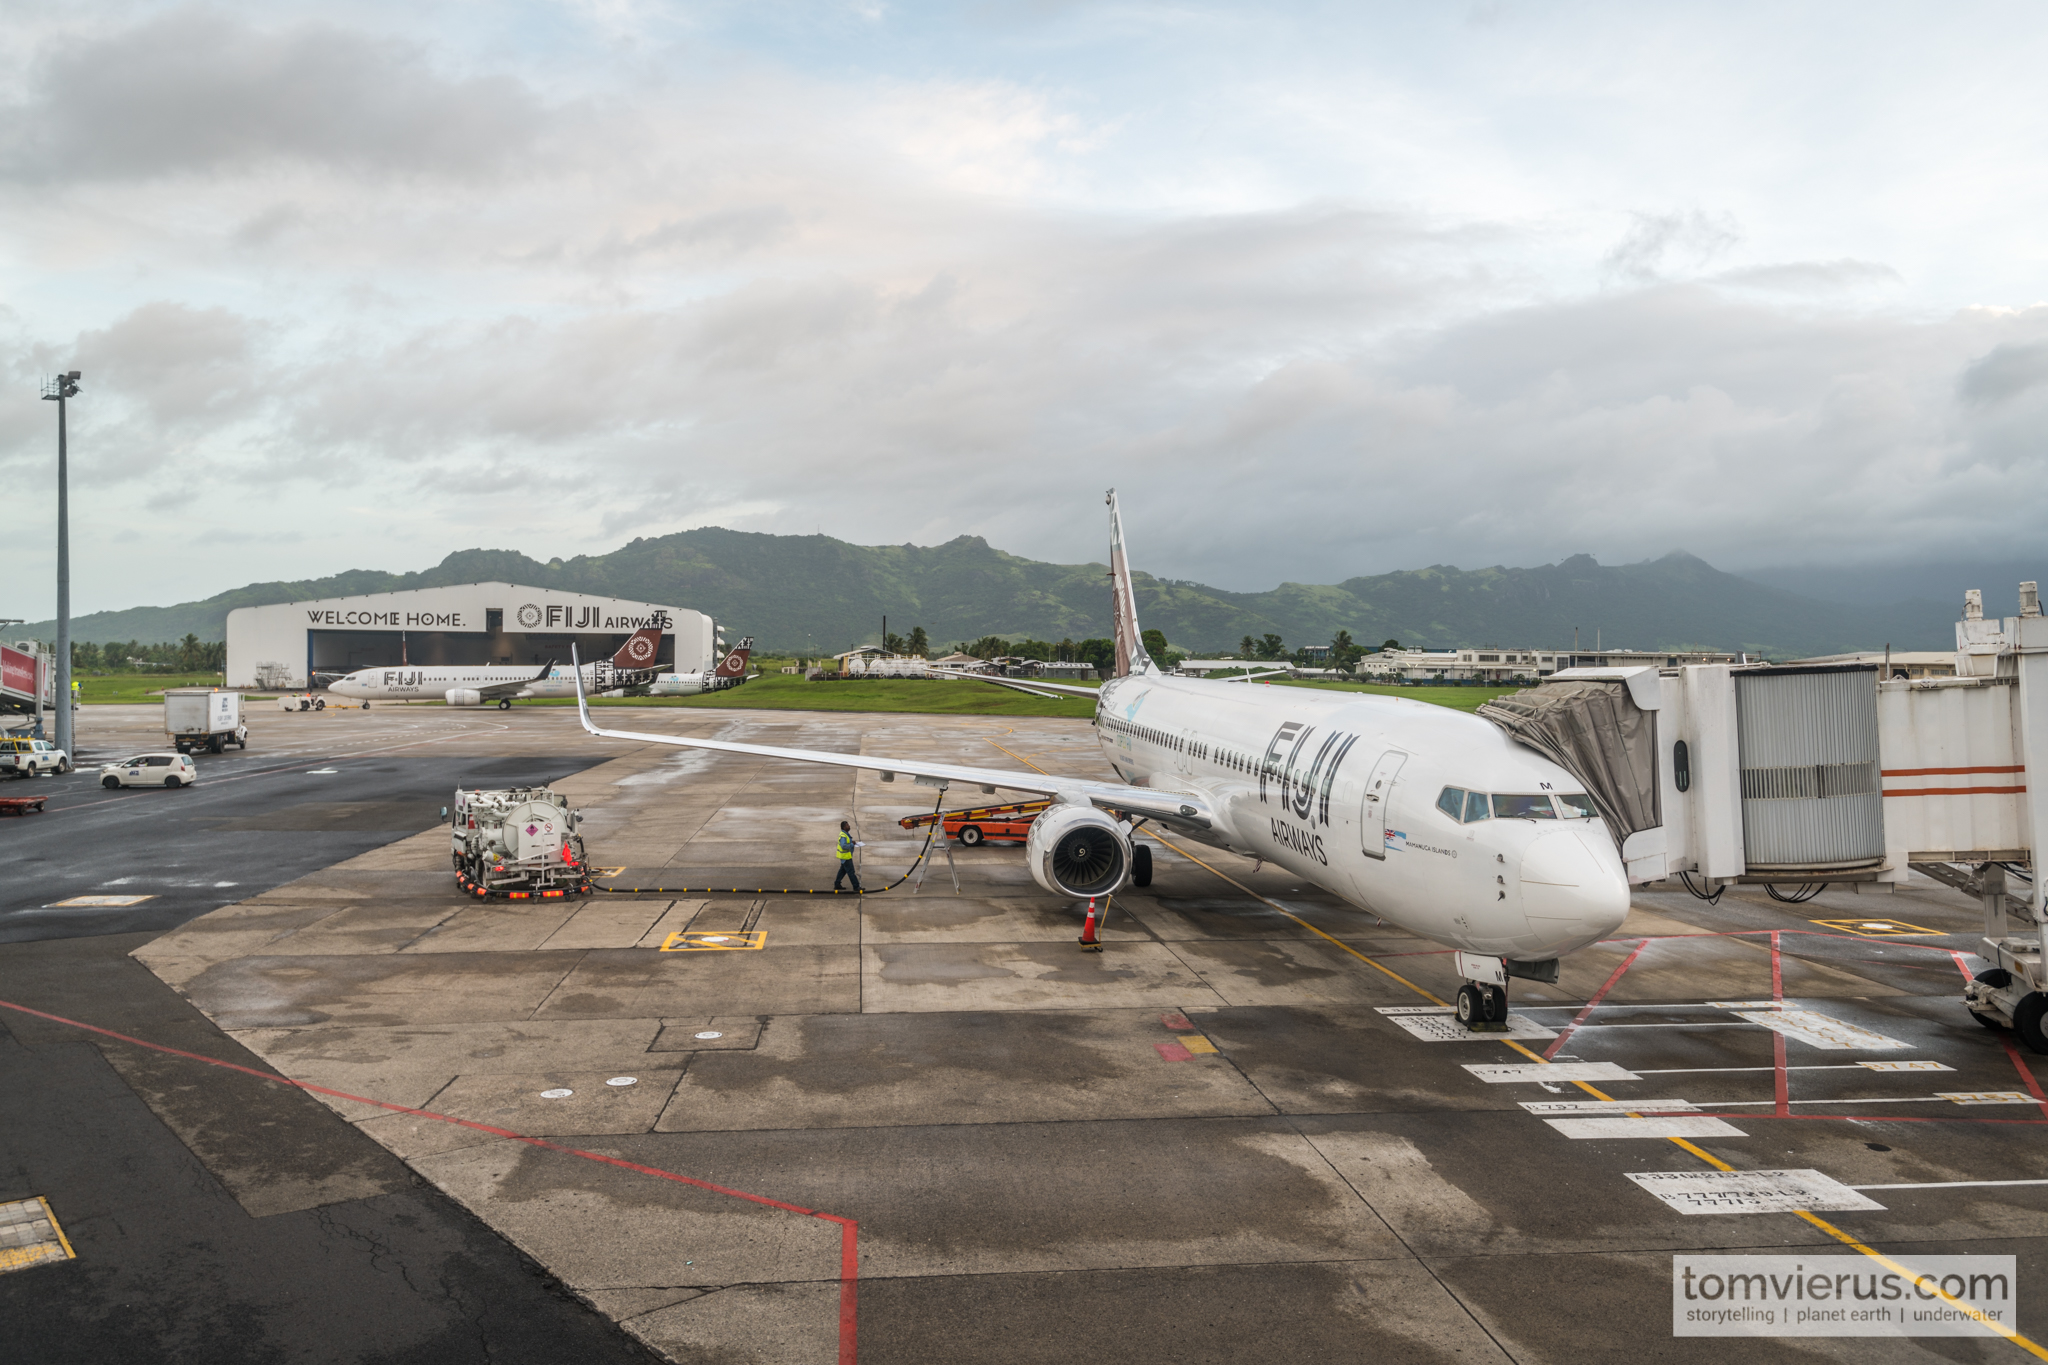 Fiji Airways, Tropics, Fiji, Plane, Expedition